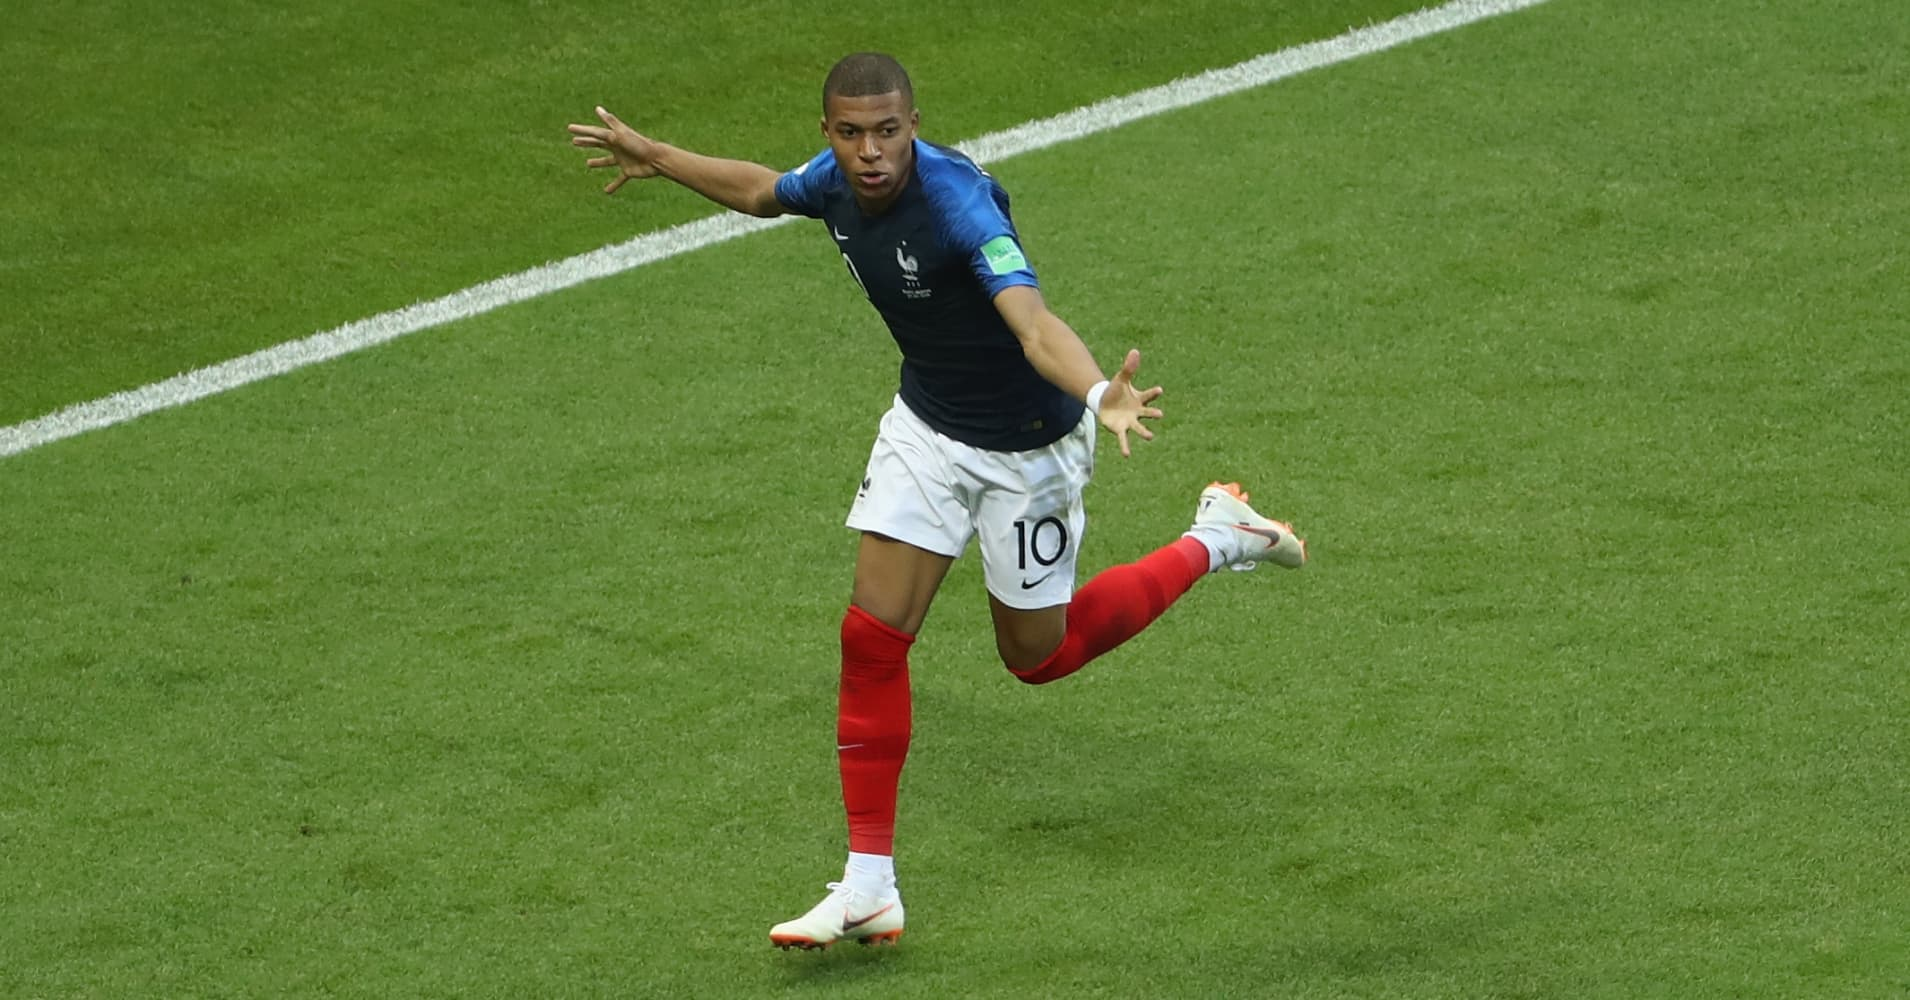 Kylian Mbappe of France celebrates after scoring his team's third goal during the 2018 FIFA World Cup Russia Round of 16 match between France and Argentina at Kazan Arena on June 30, 2018 in Kazan, Russia.